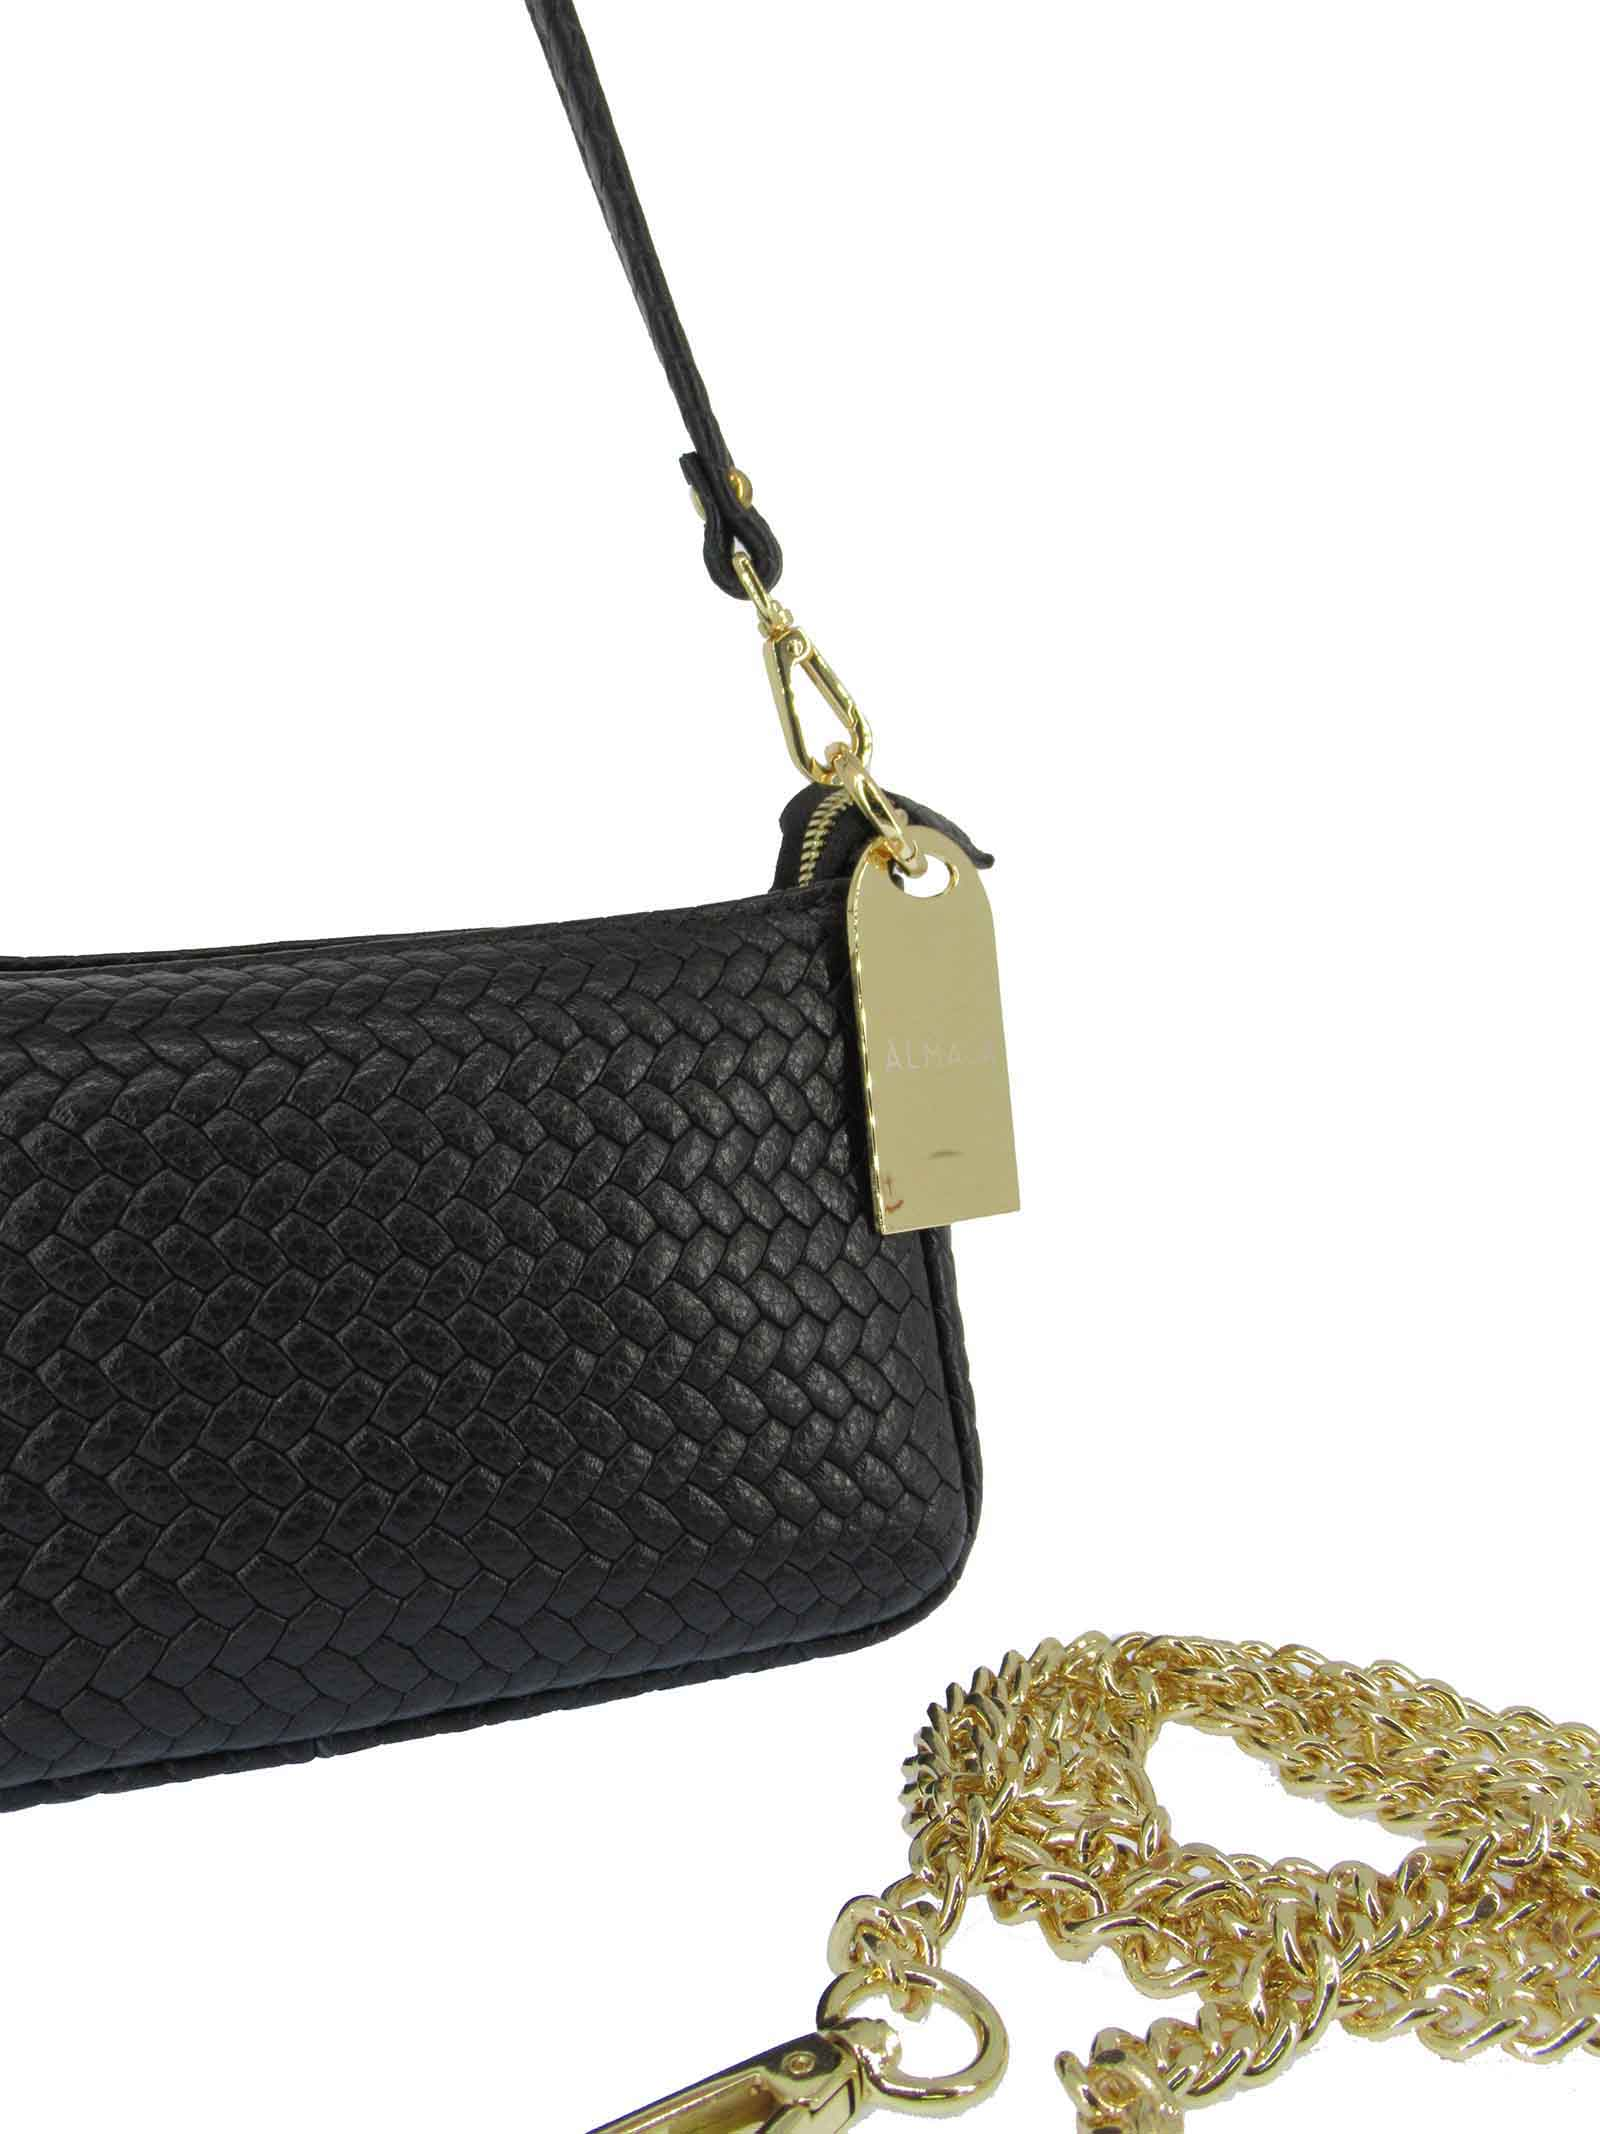 Women's Bibi Clutch Bag in Black Braided Leather with Leather Shoulder Strap and Gold Chain 091a0021 Almala | Bags and backpacks | BIBI001